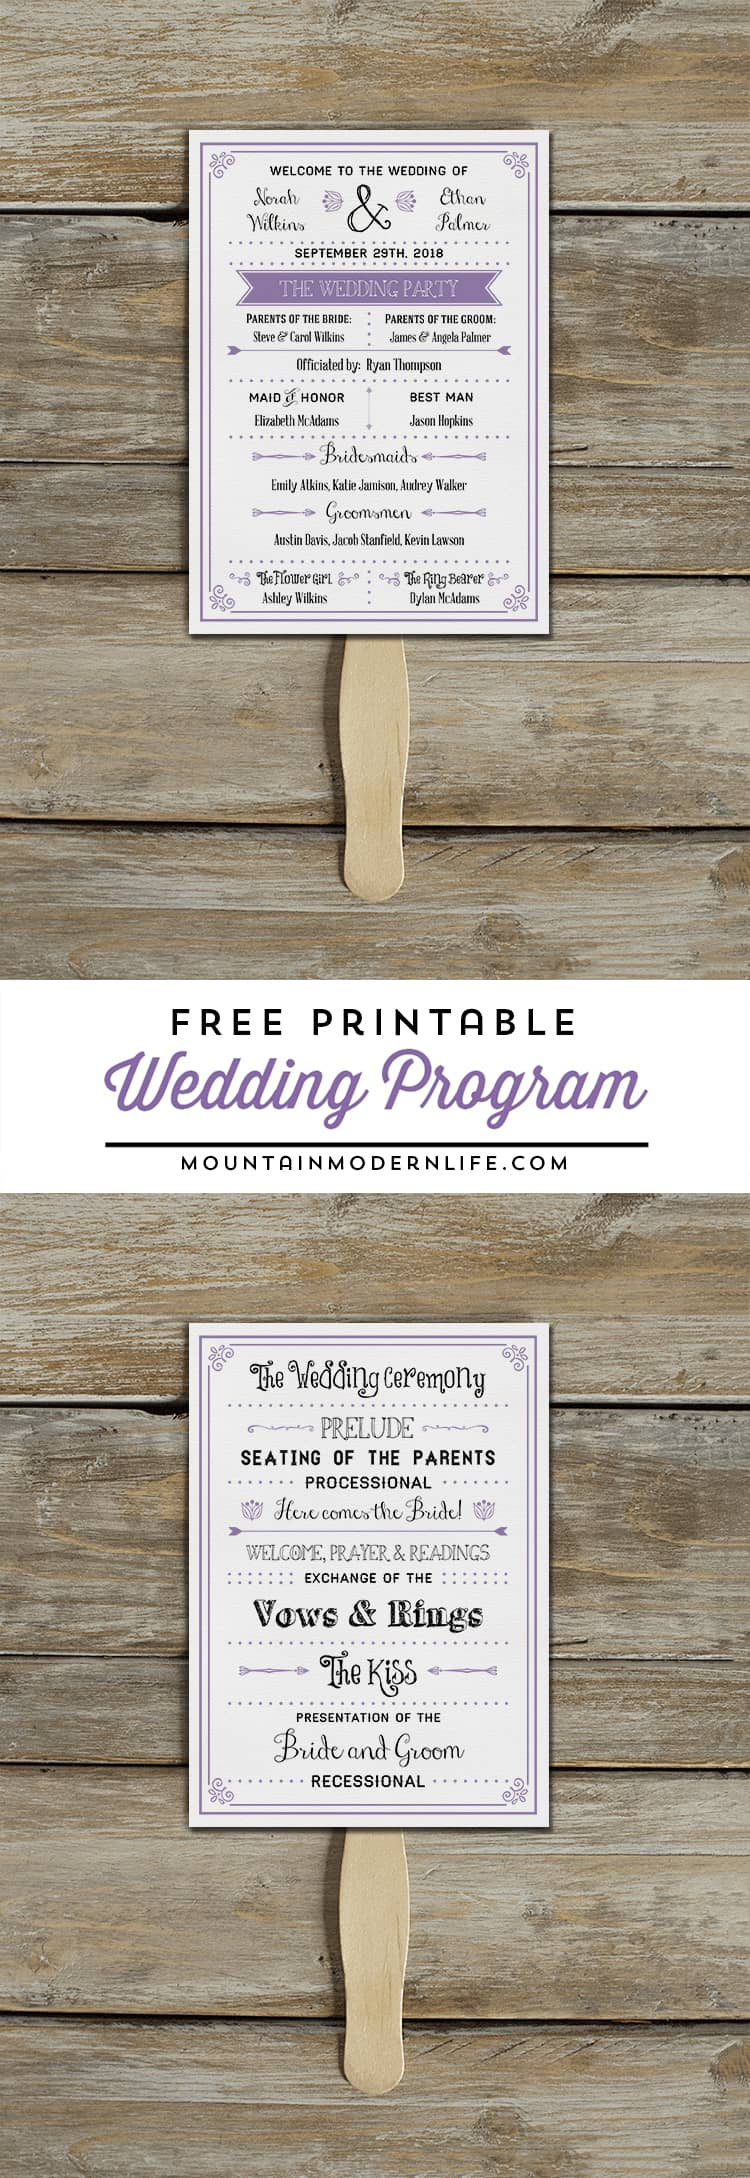 Unforgettable image for printable wedding program